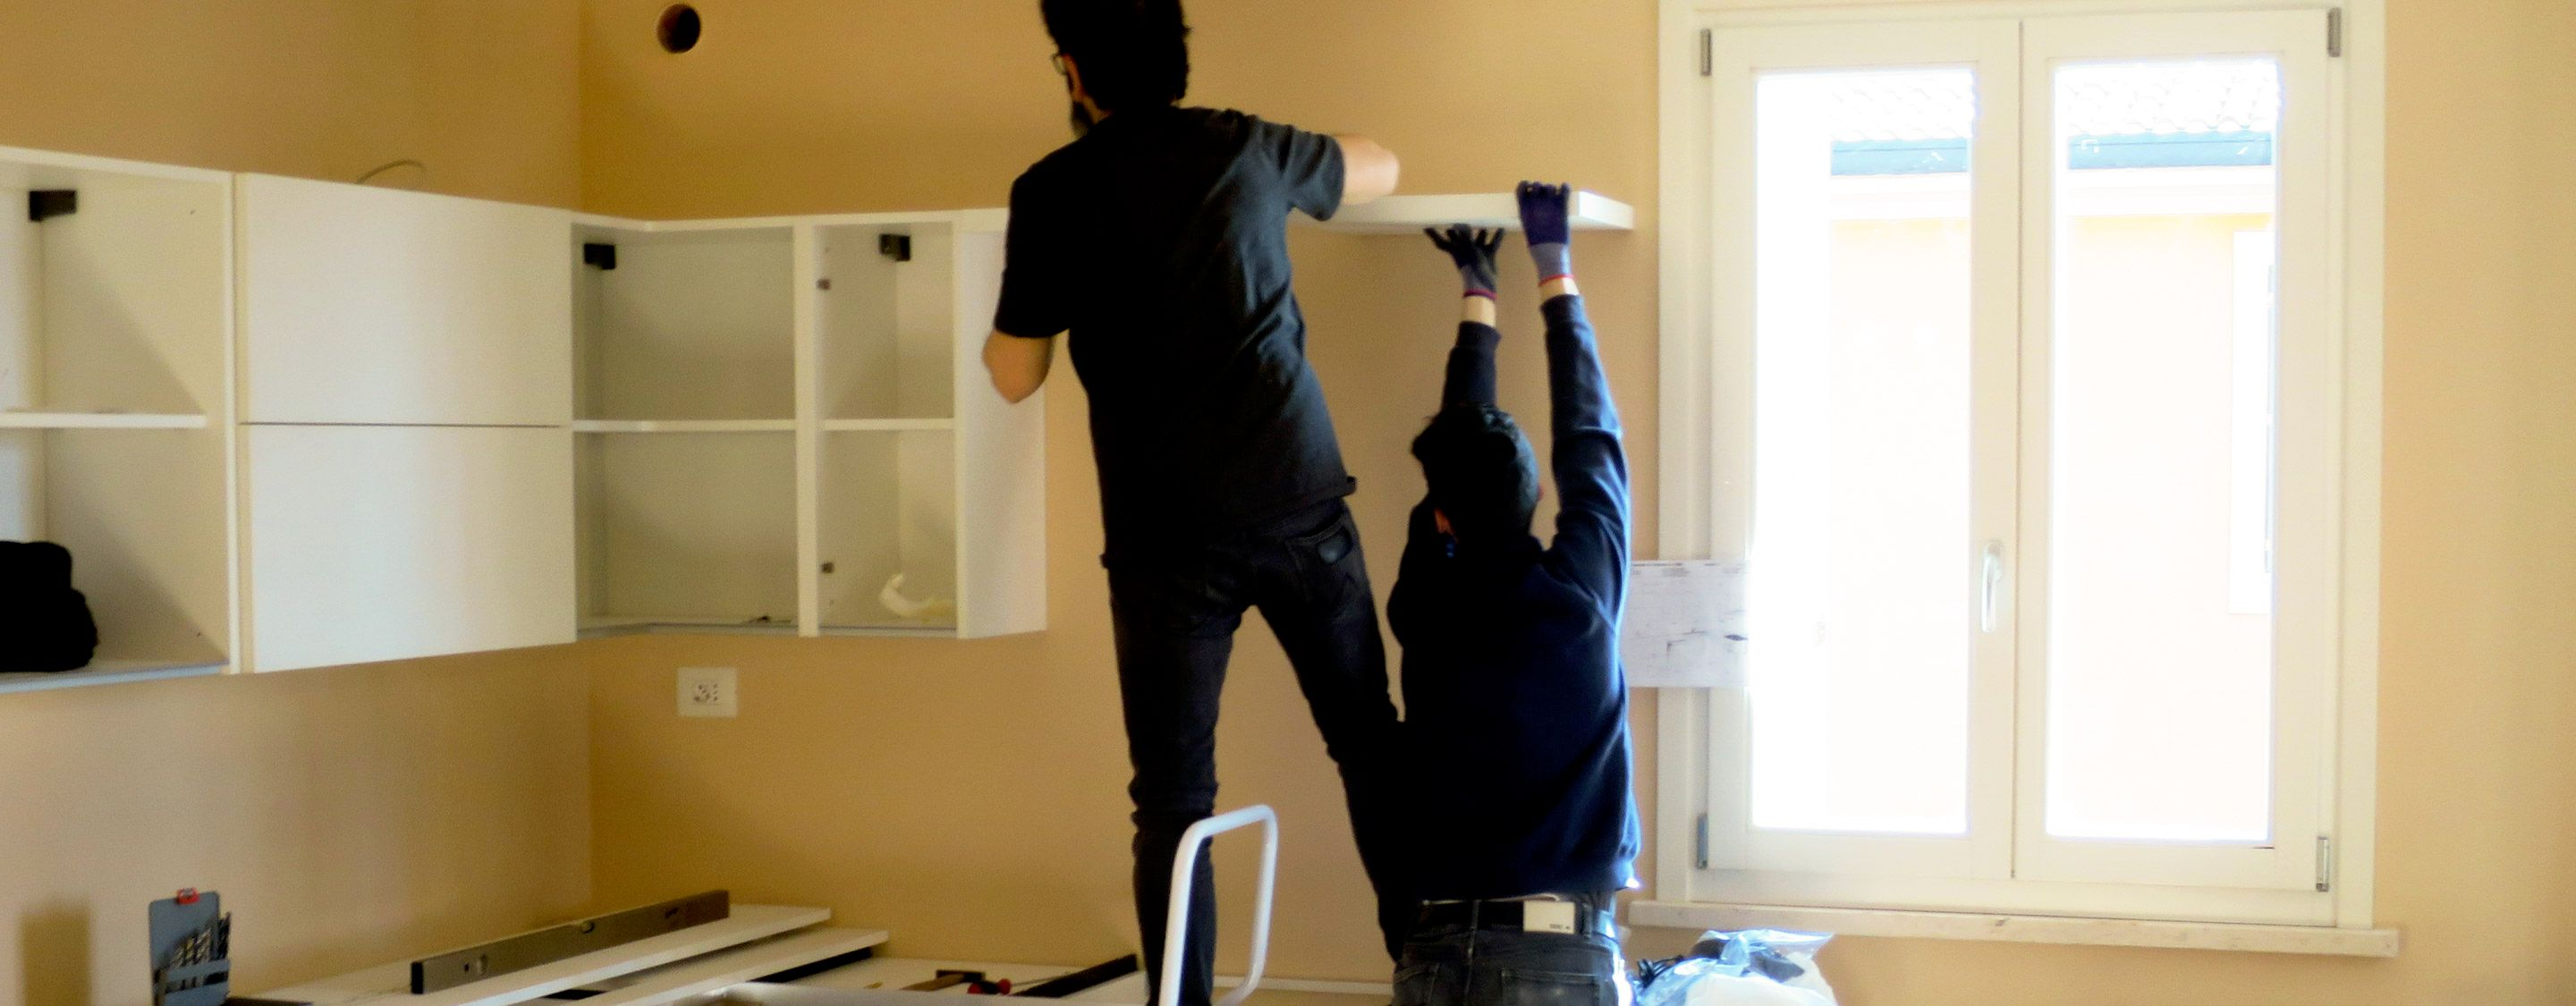 men adding shelves and cabinets to kitchen